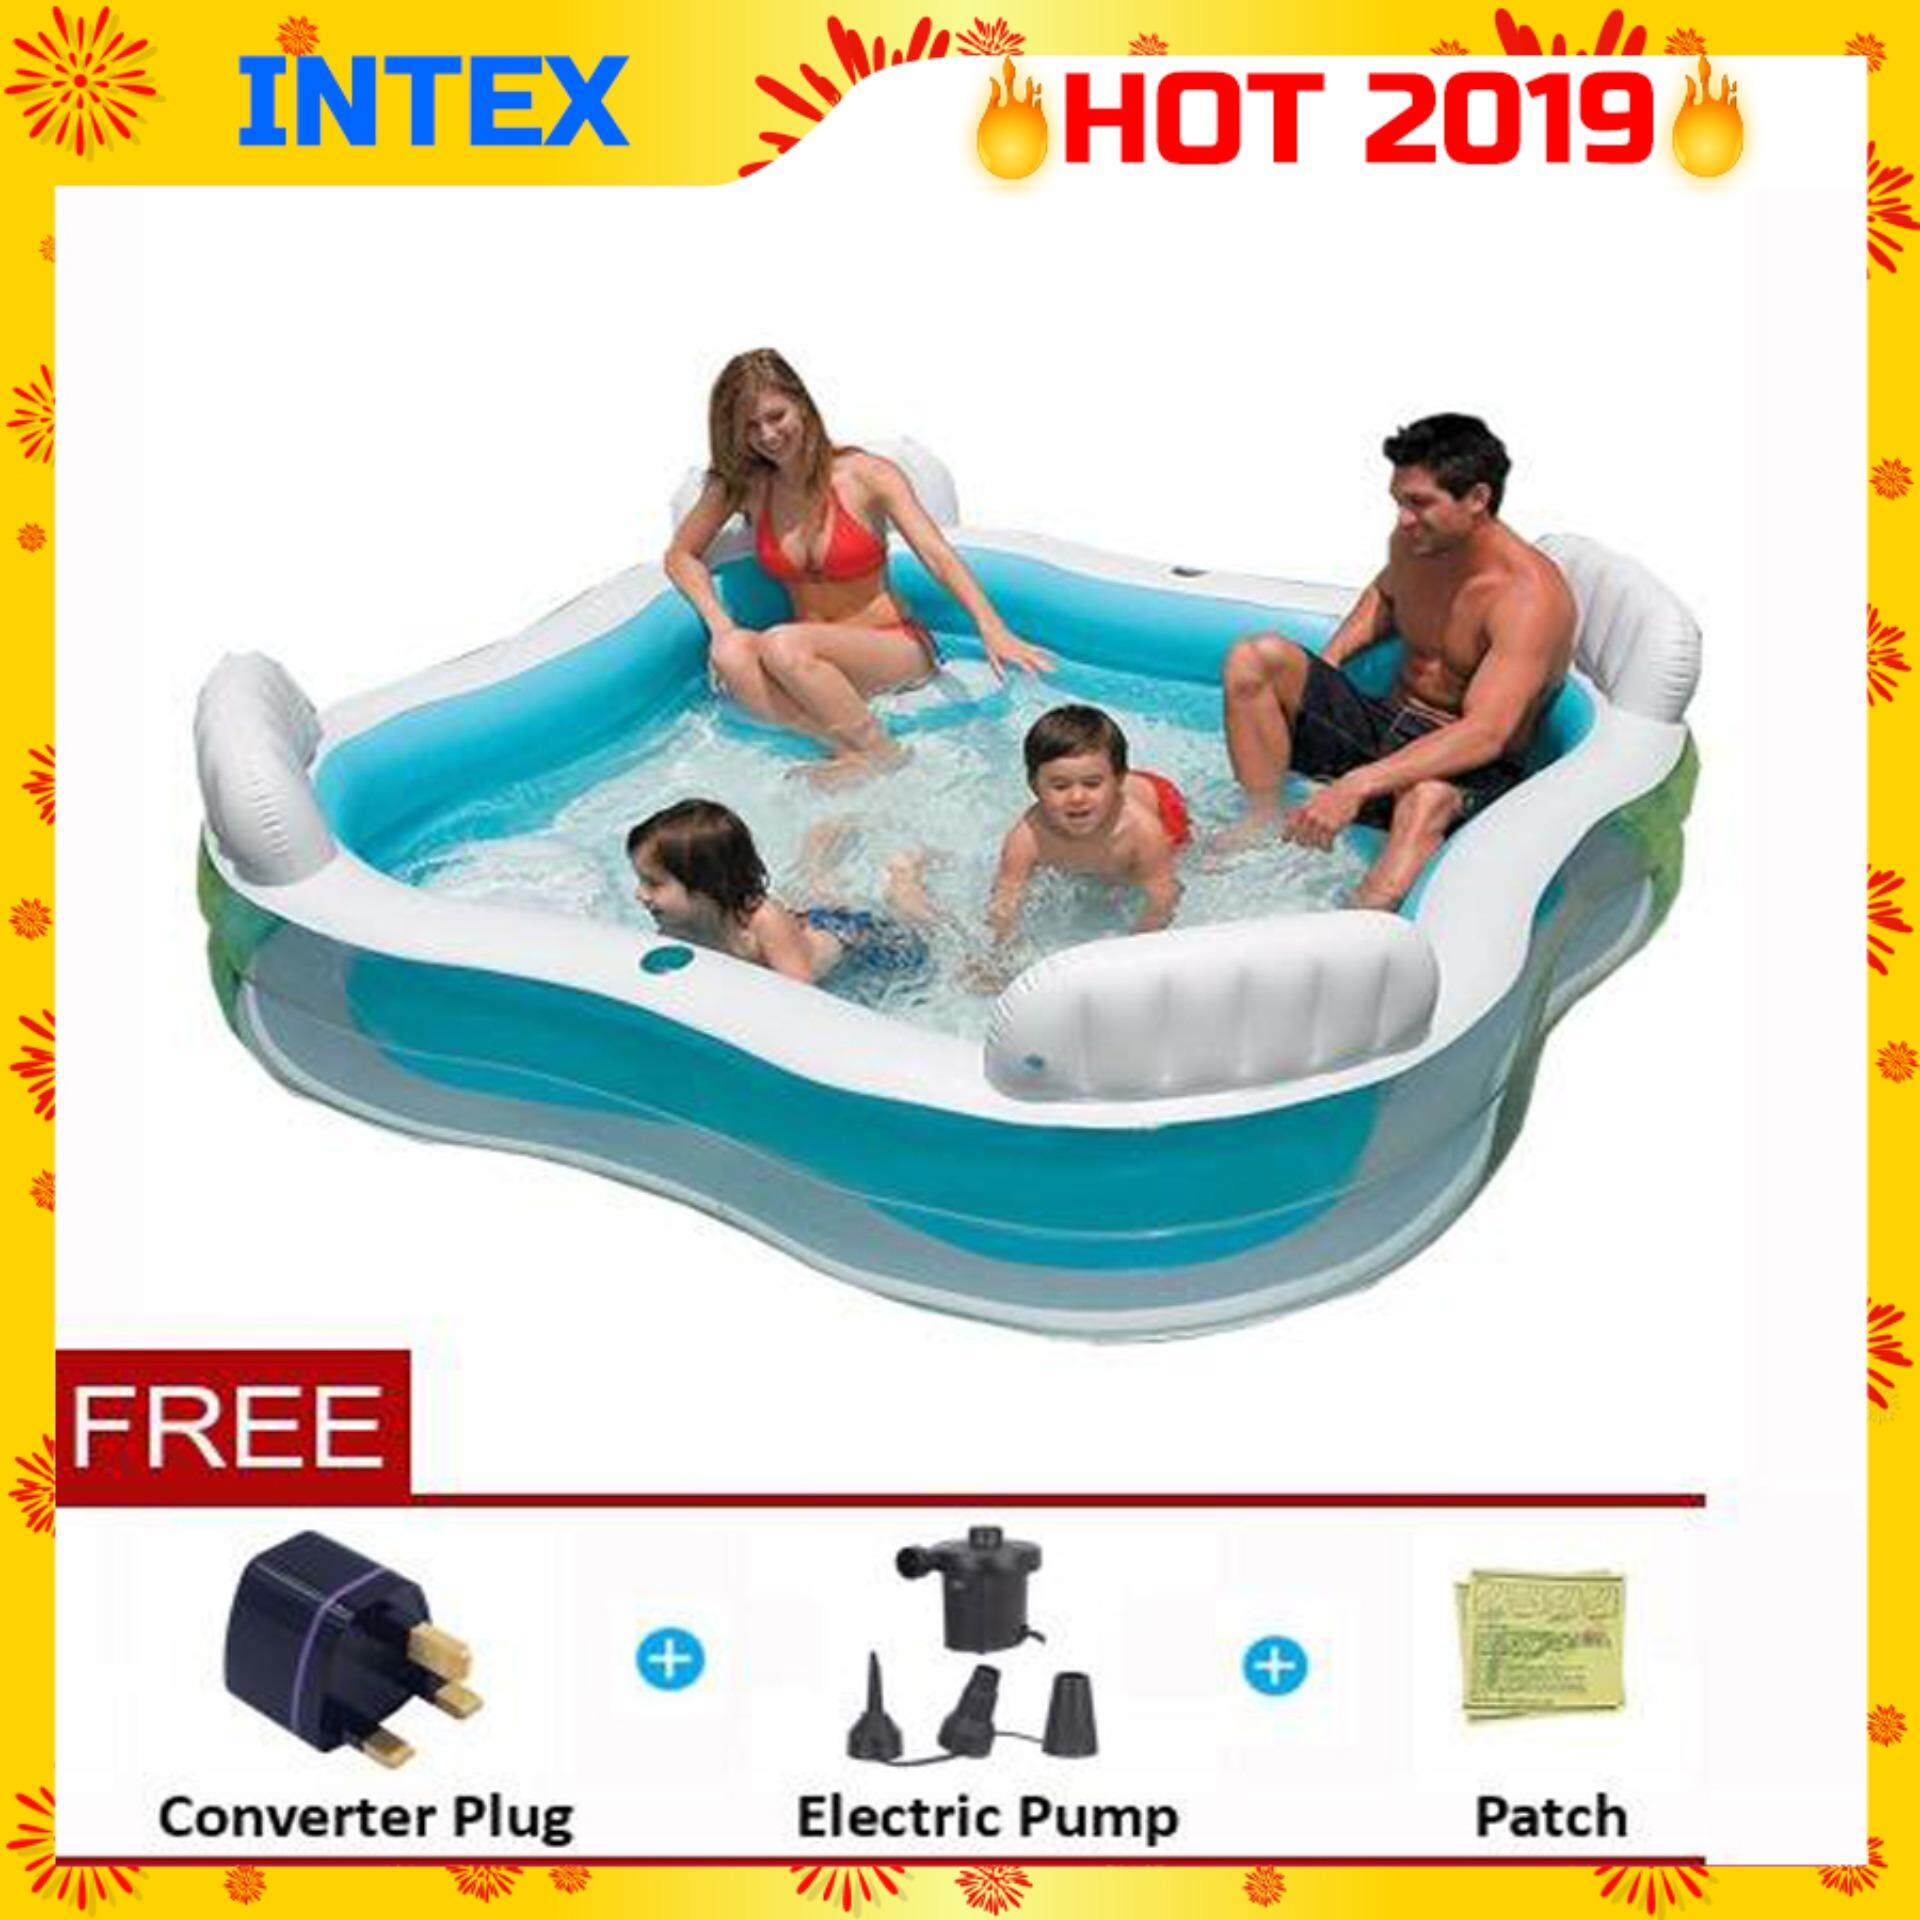 Intex Oder Bestway Frame Pool Intex 56475 Swimming Pool Center Family Lounge Inflatable Pool With 4 Built In Inflatable Seat And 2 Drink Holders Blue Color Premium Toys For